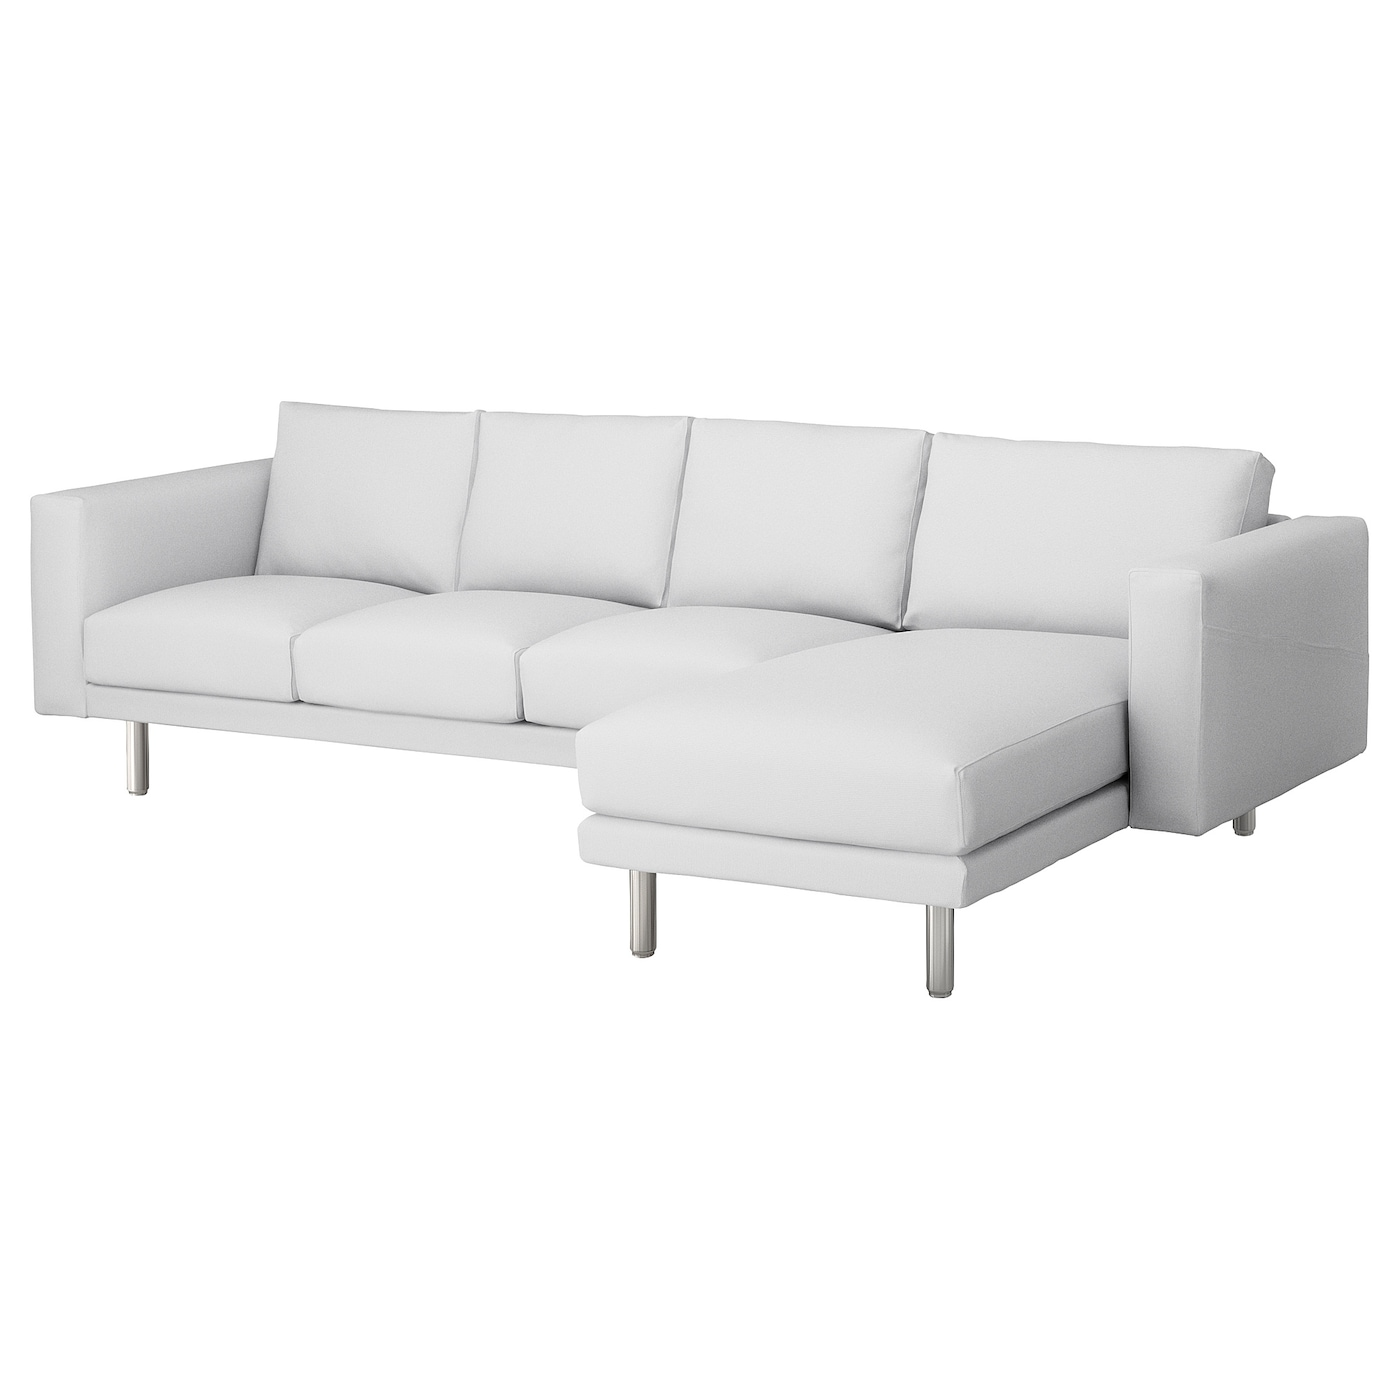 Norsborg 4 seat sofa with chaise longue finnsta white for 3 seat sofa with chaise